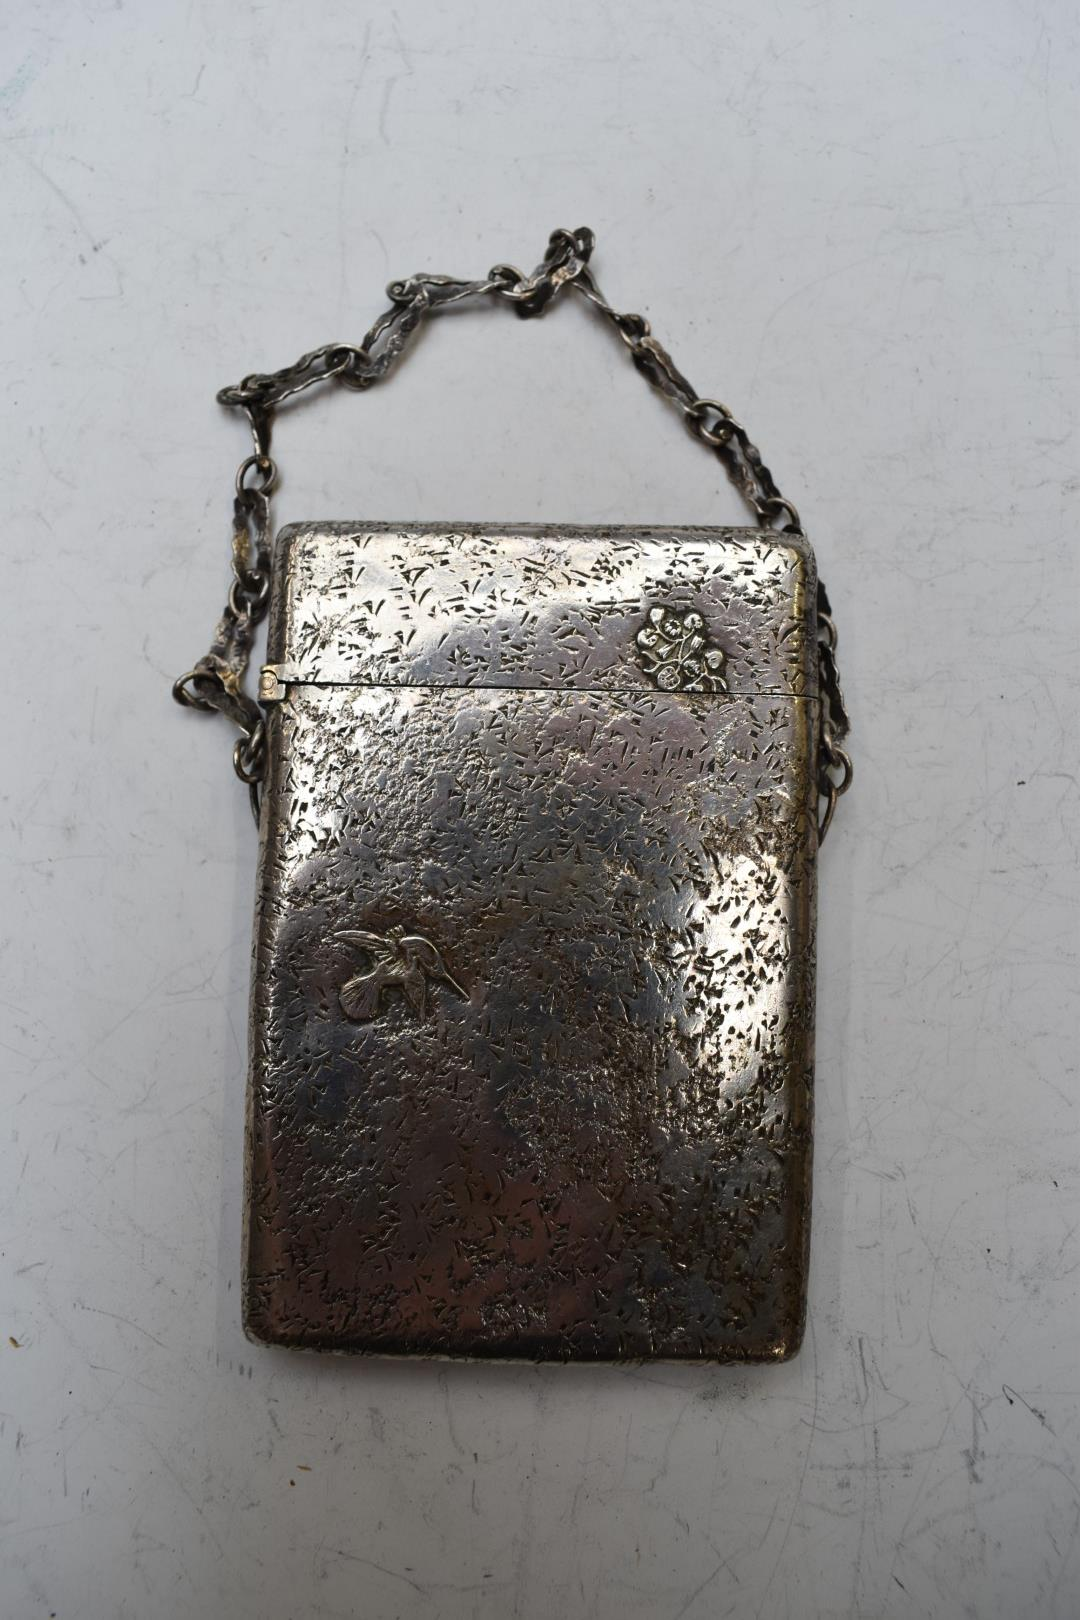 Gorham American white metal card case decorated with birds, with Gorham silver marks, stamped - Image 2 of 3